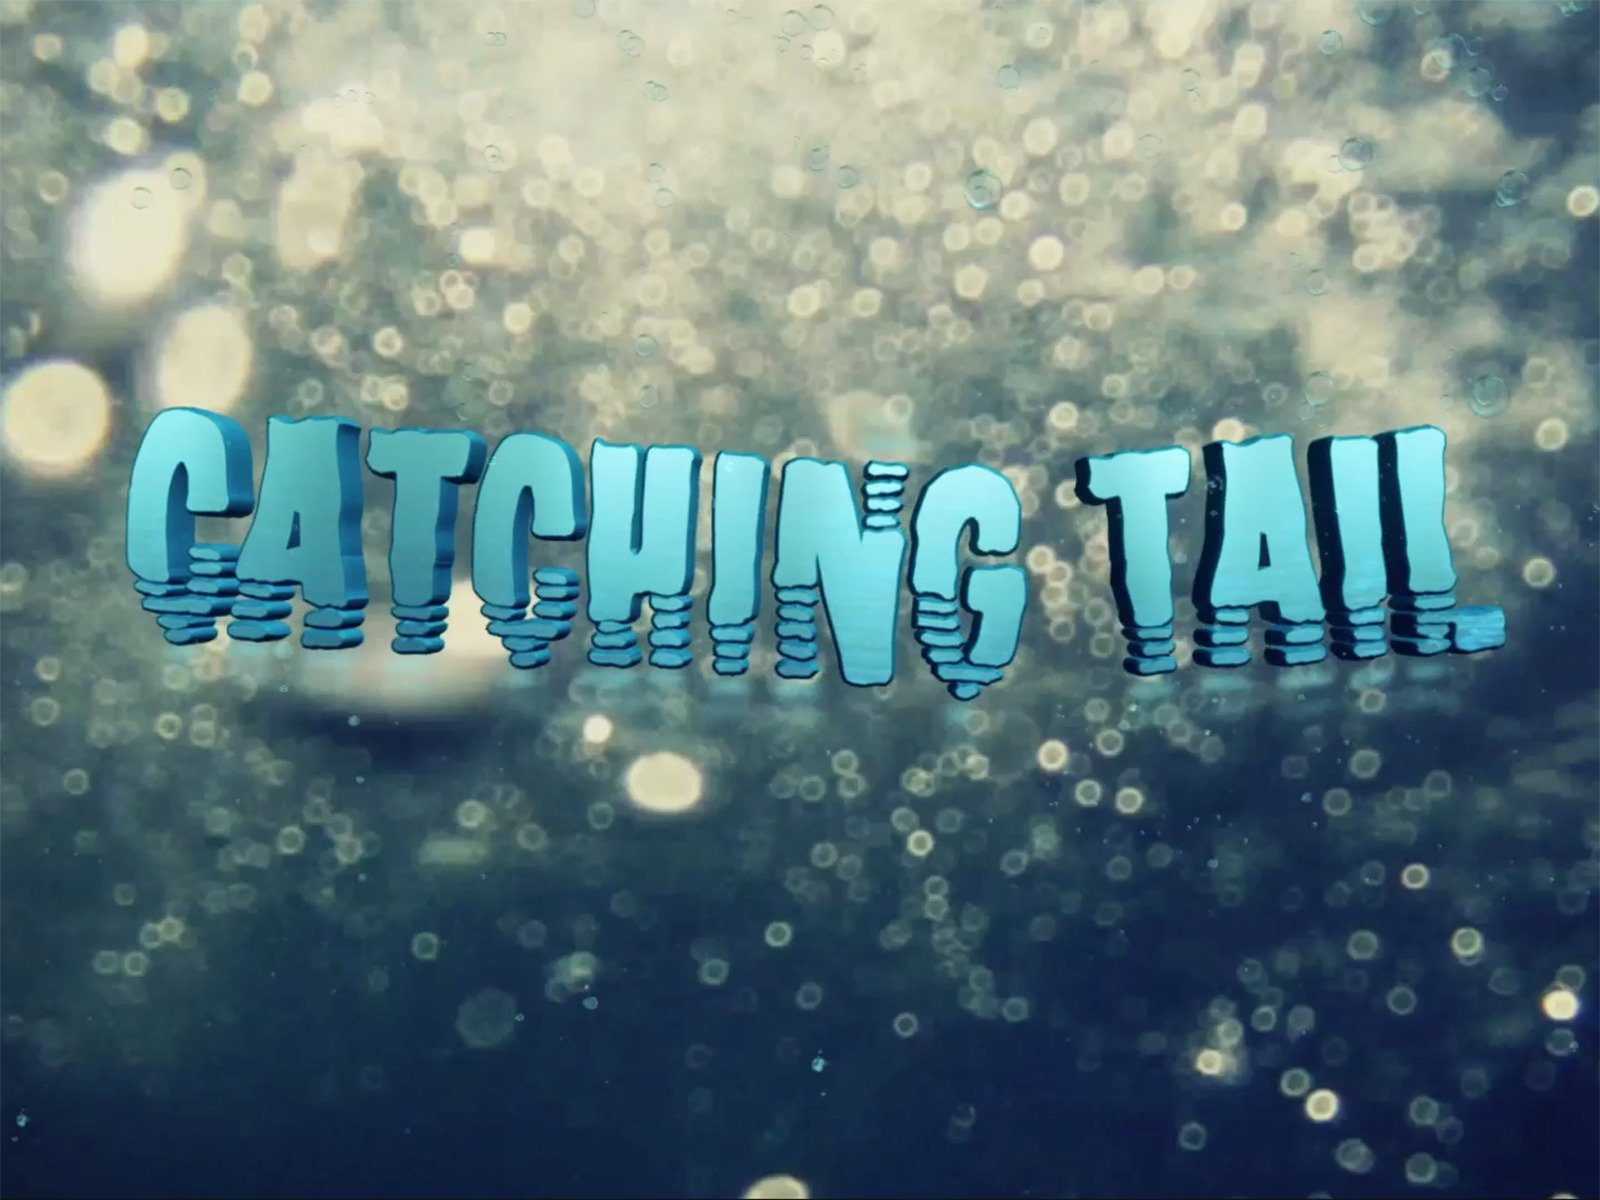 Catching Tail